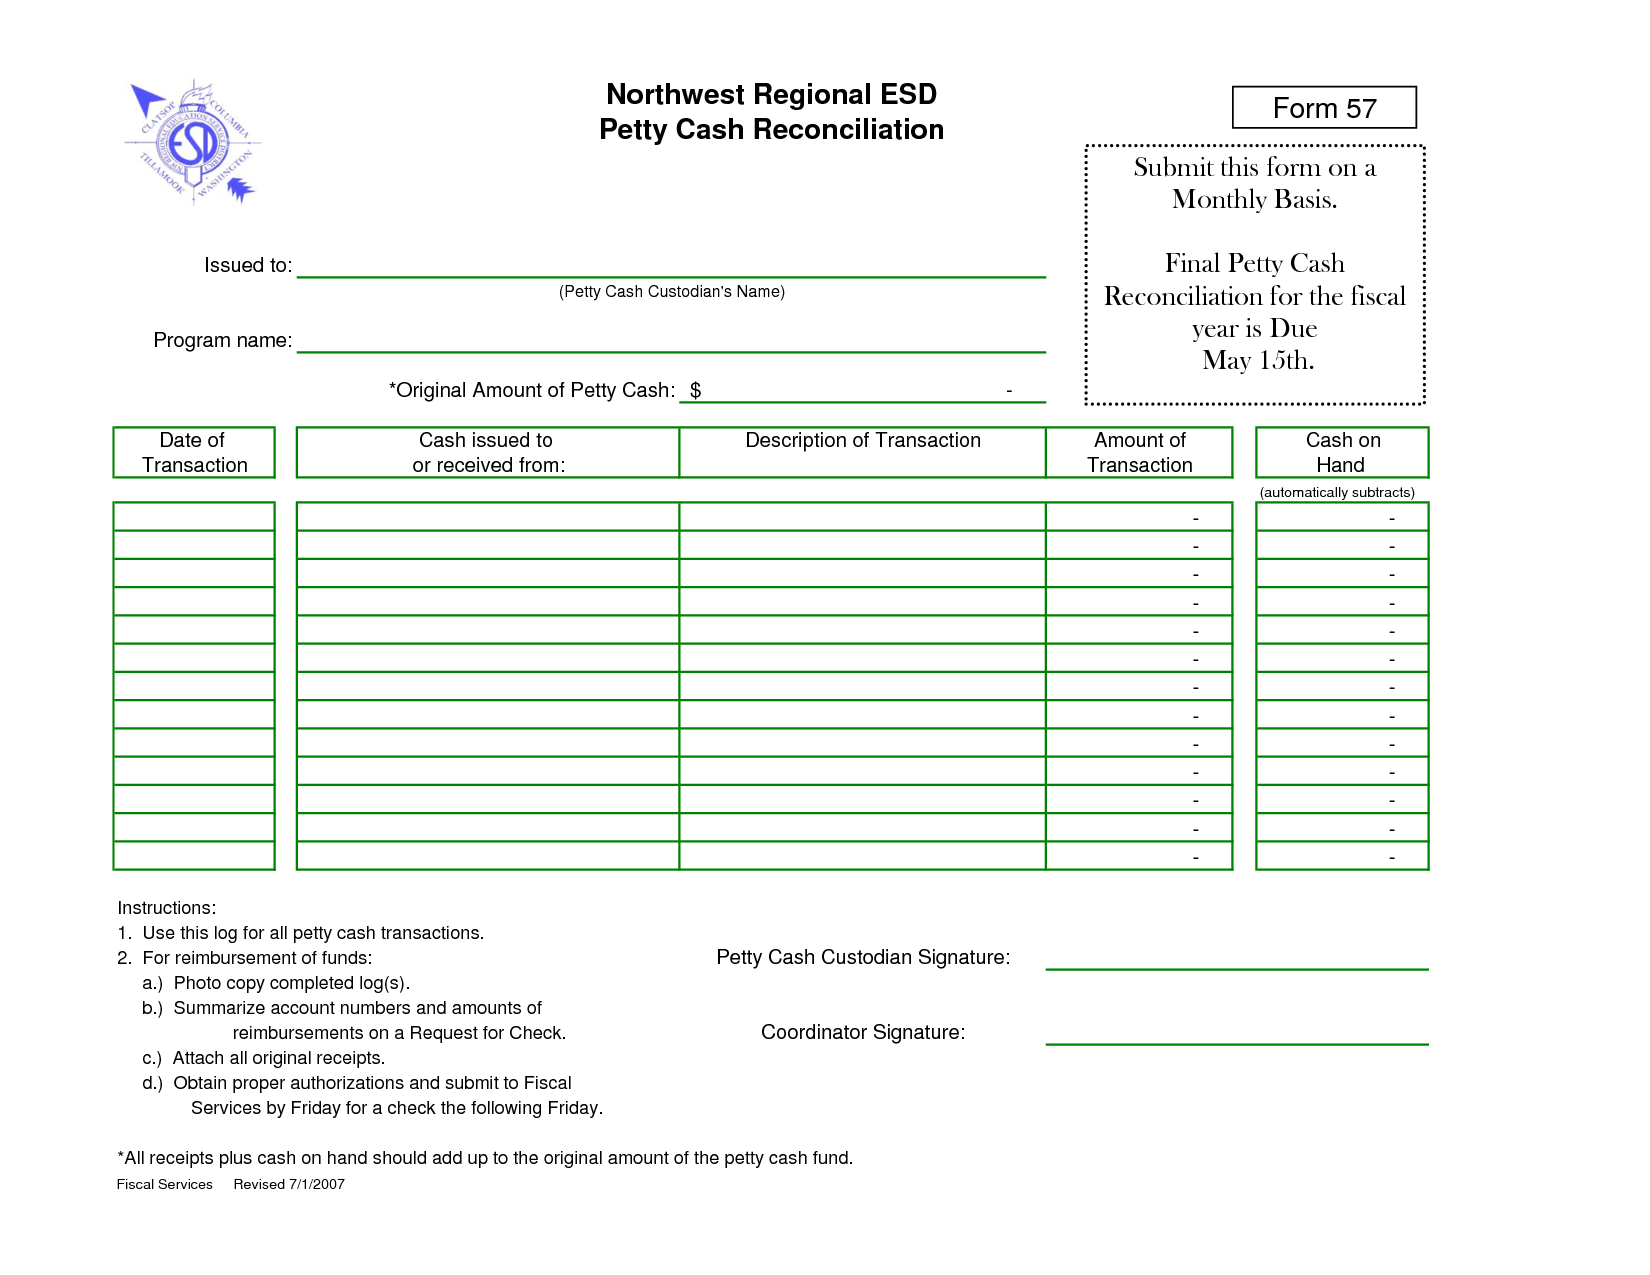 Petty Cash Reconciliation Form Template With Images